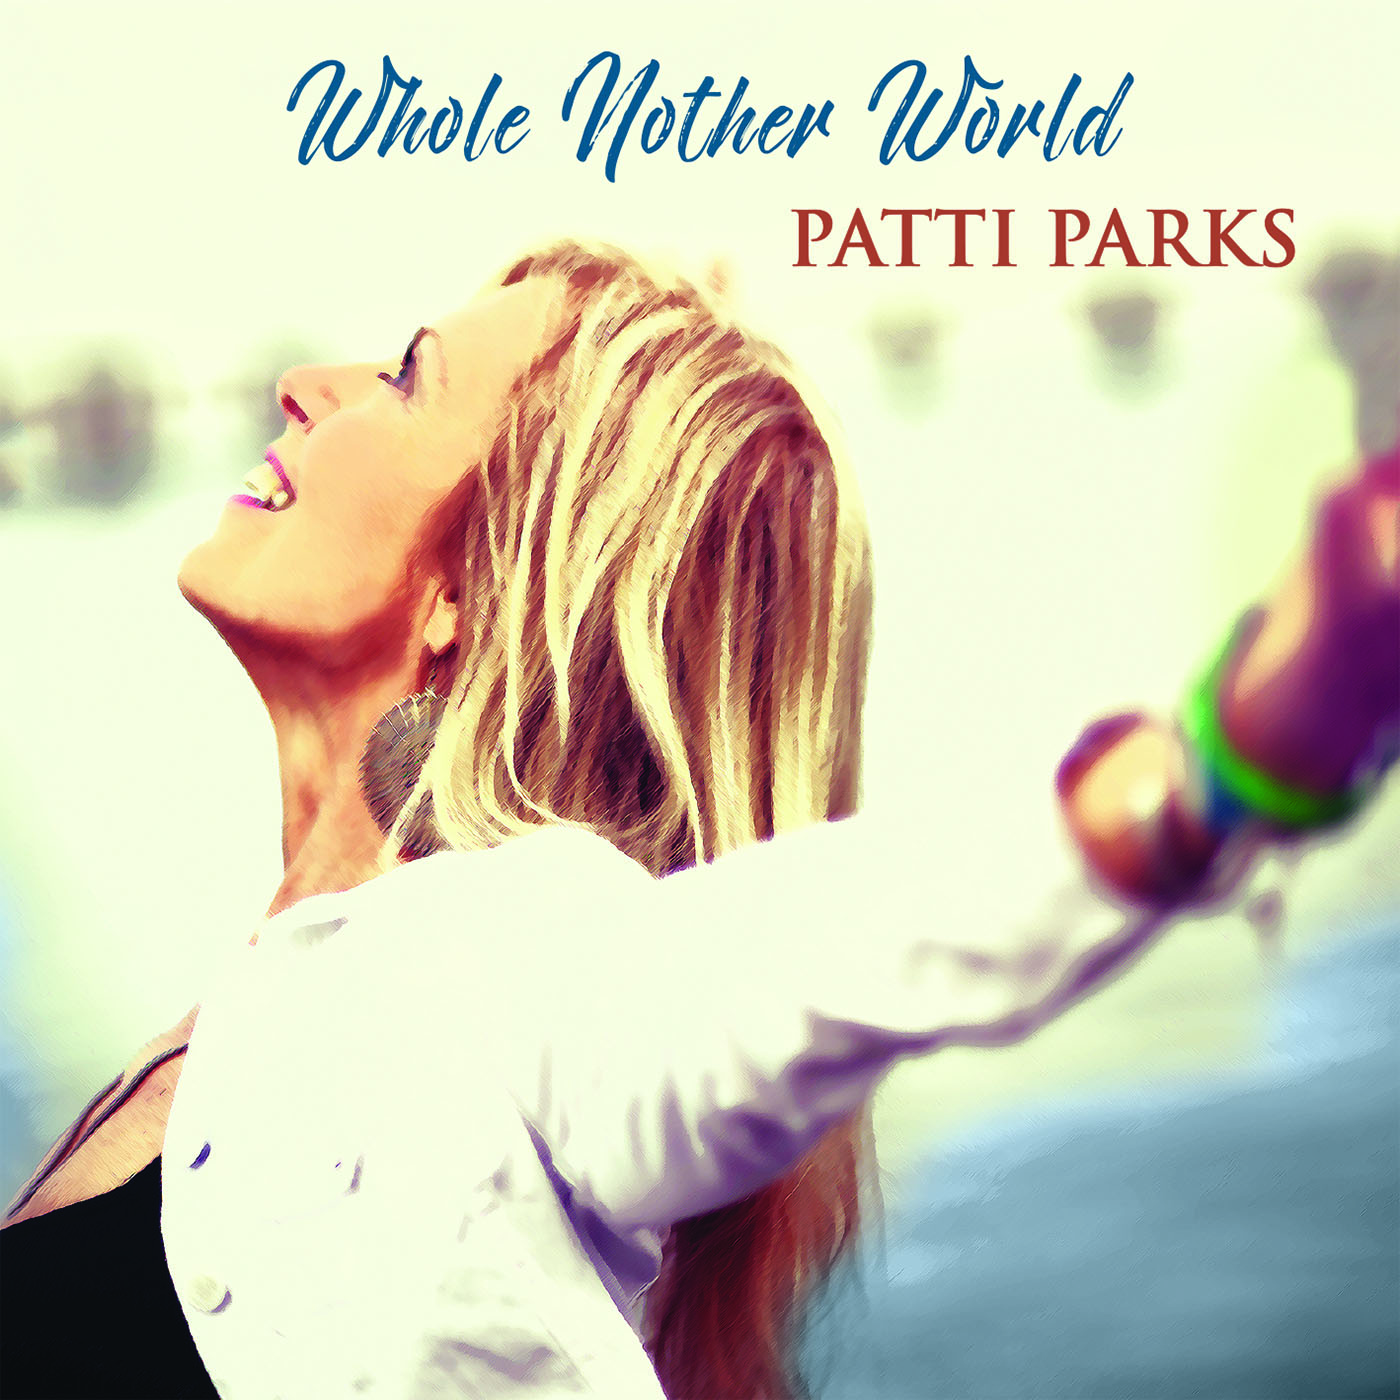 Patti Parks - Whole Nother World